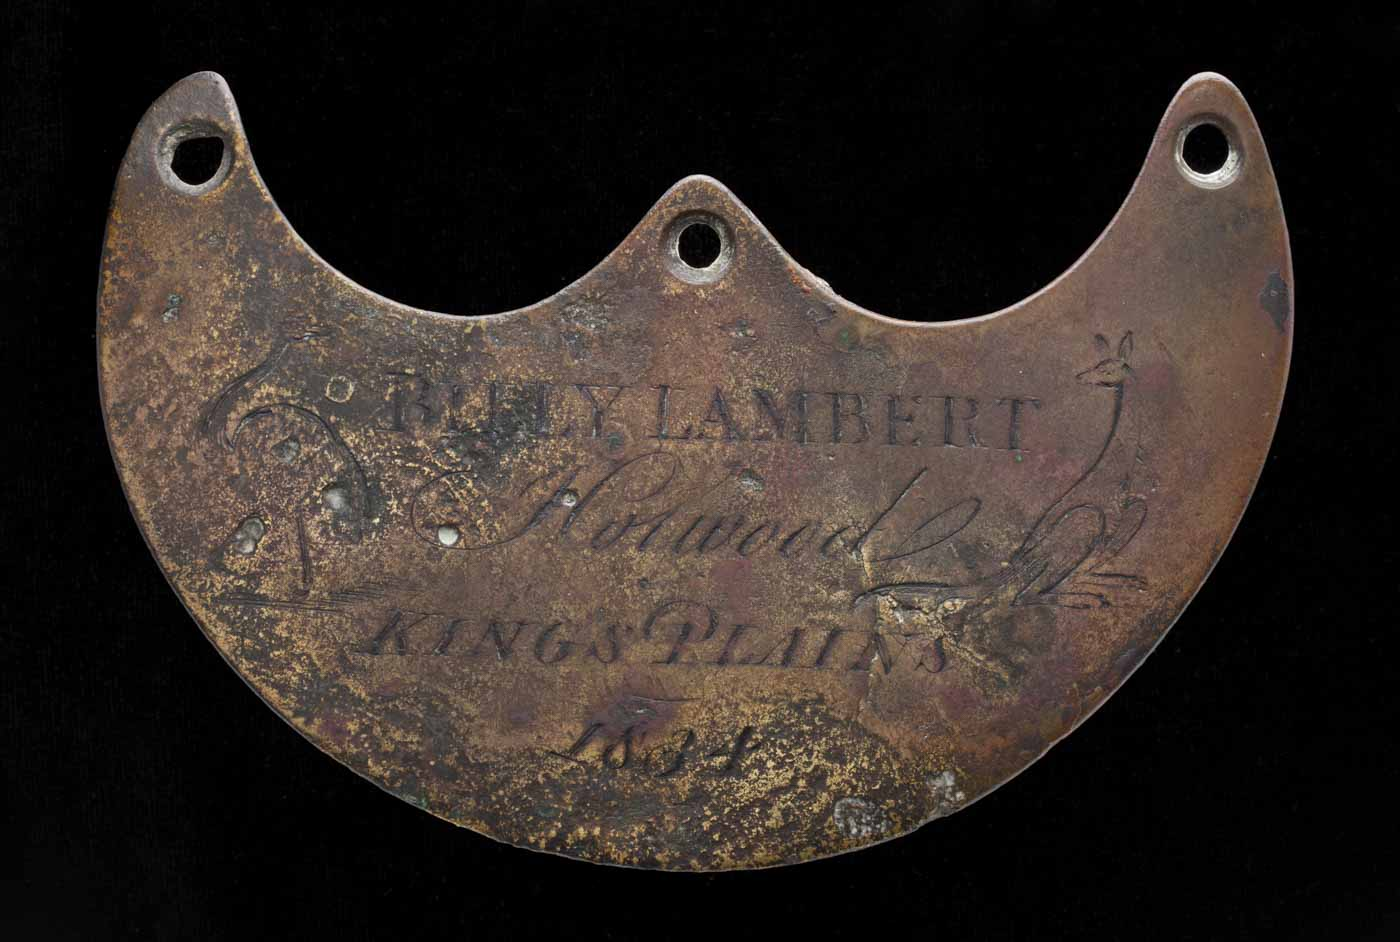 Engraved breastplate with a rusted, pitted surface. Includes images of a kangaroo and emu and text '1834'. - click to view larger image